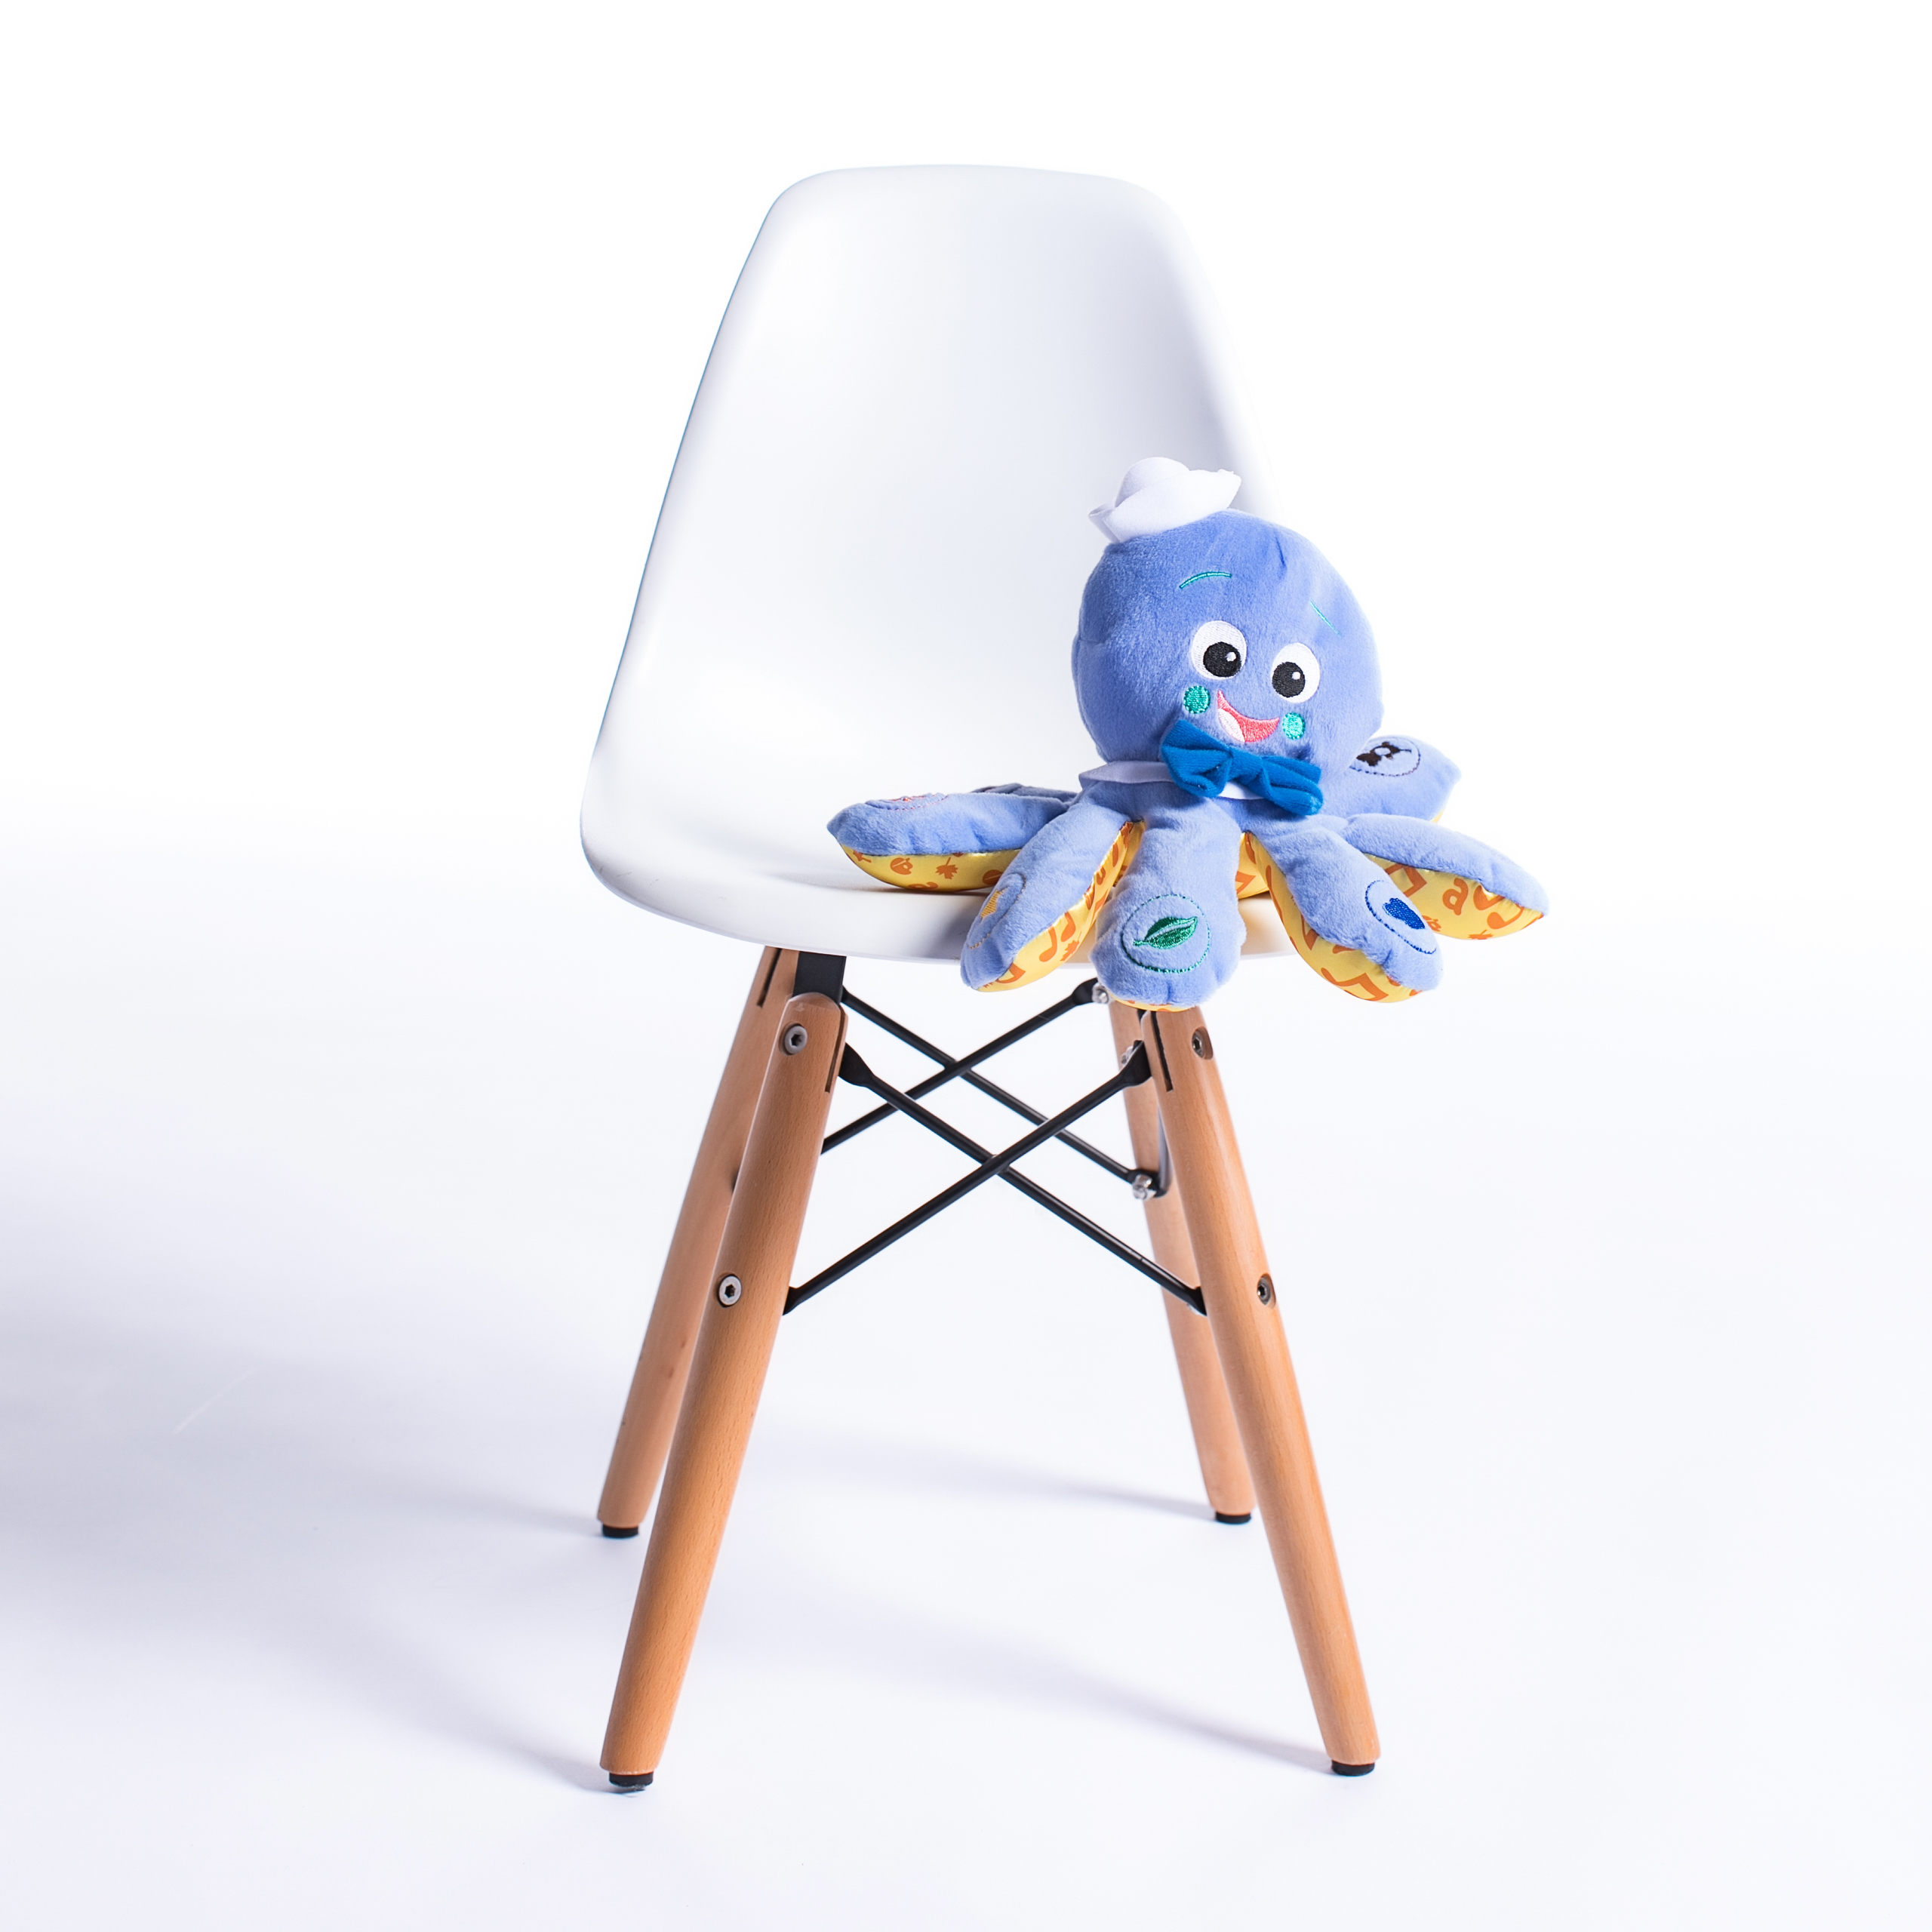 Baby Musical Toys Octoplush Musical Toy